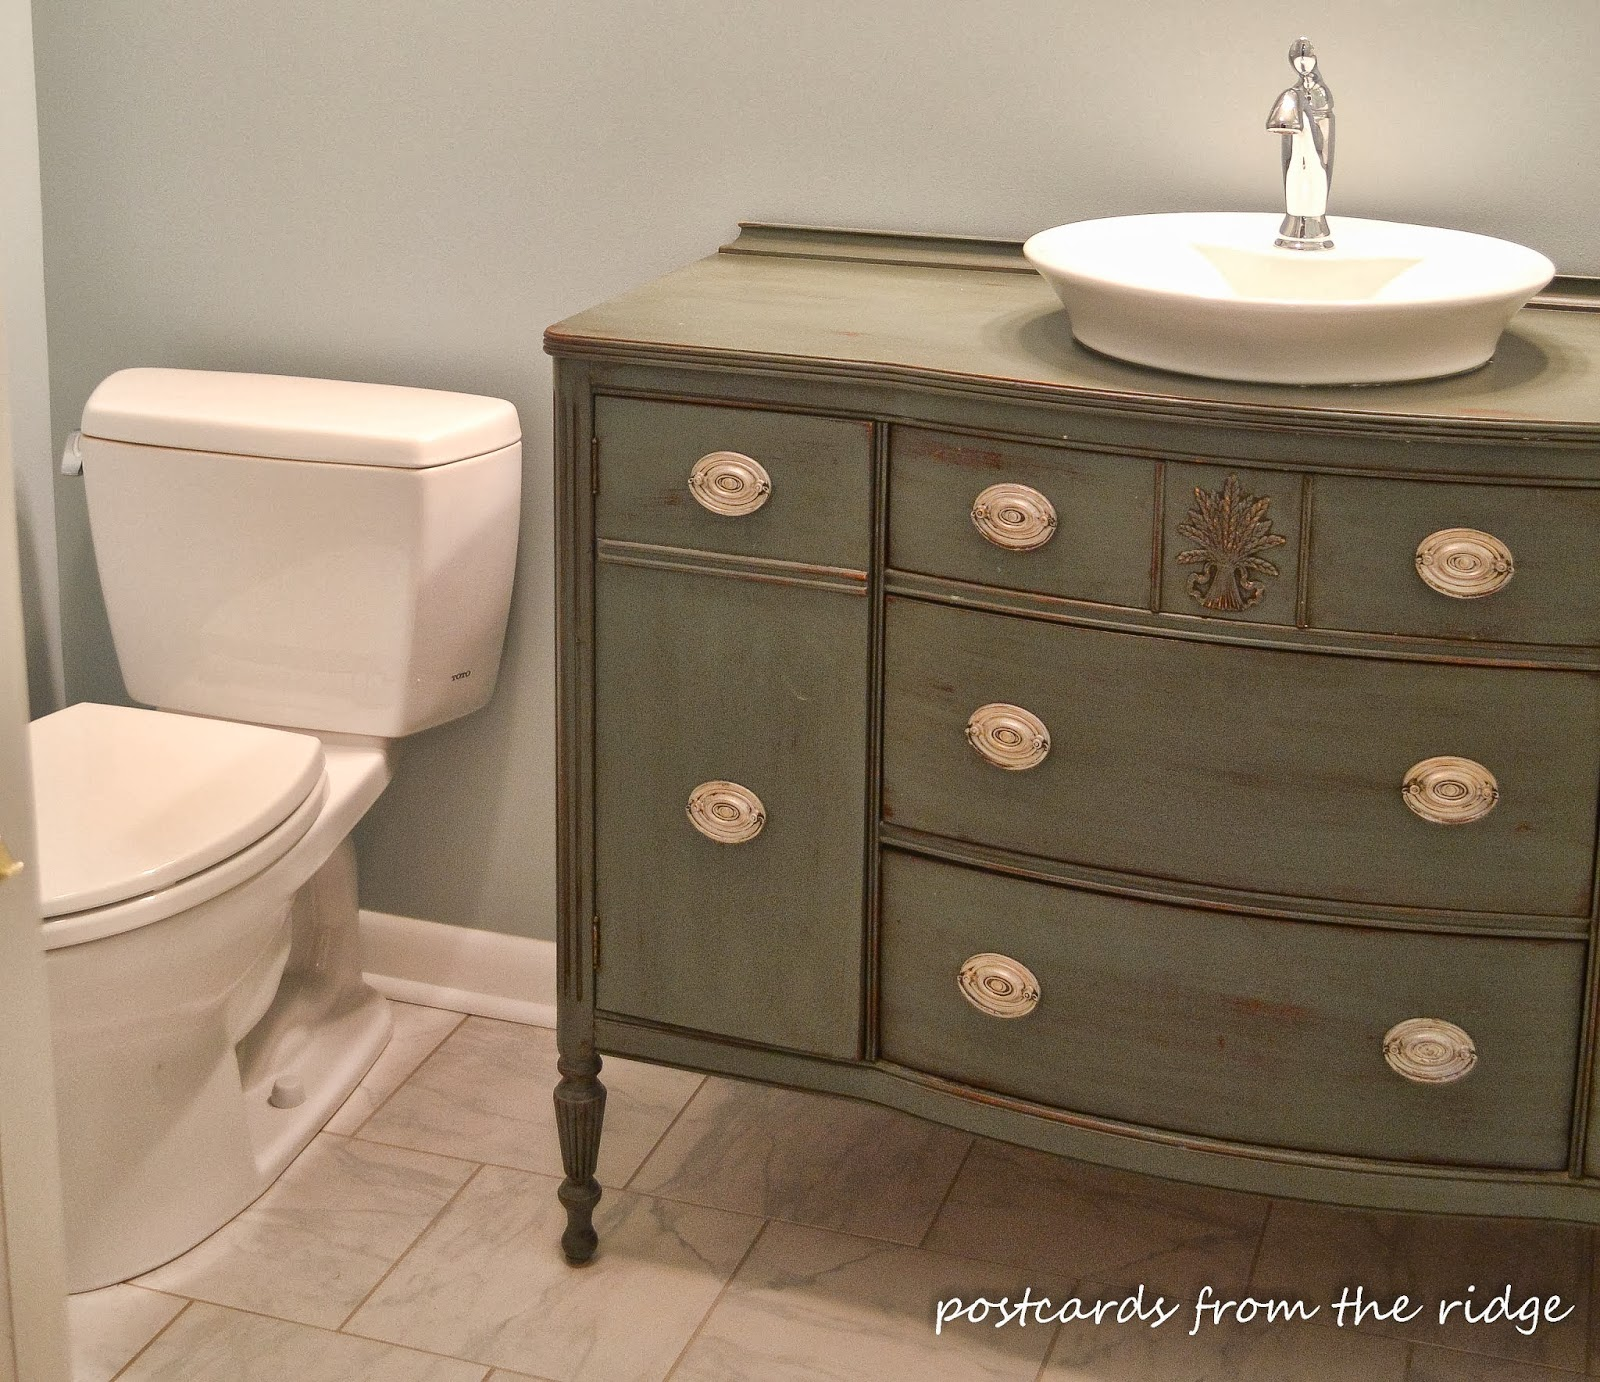 New master bath vanity created from an old dining room buffet. ~ Postcards from the Ridge